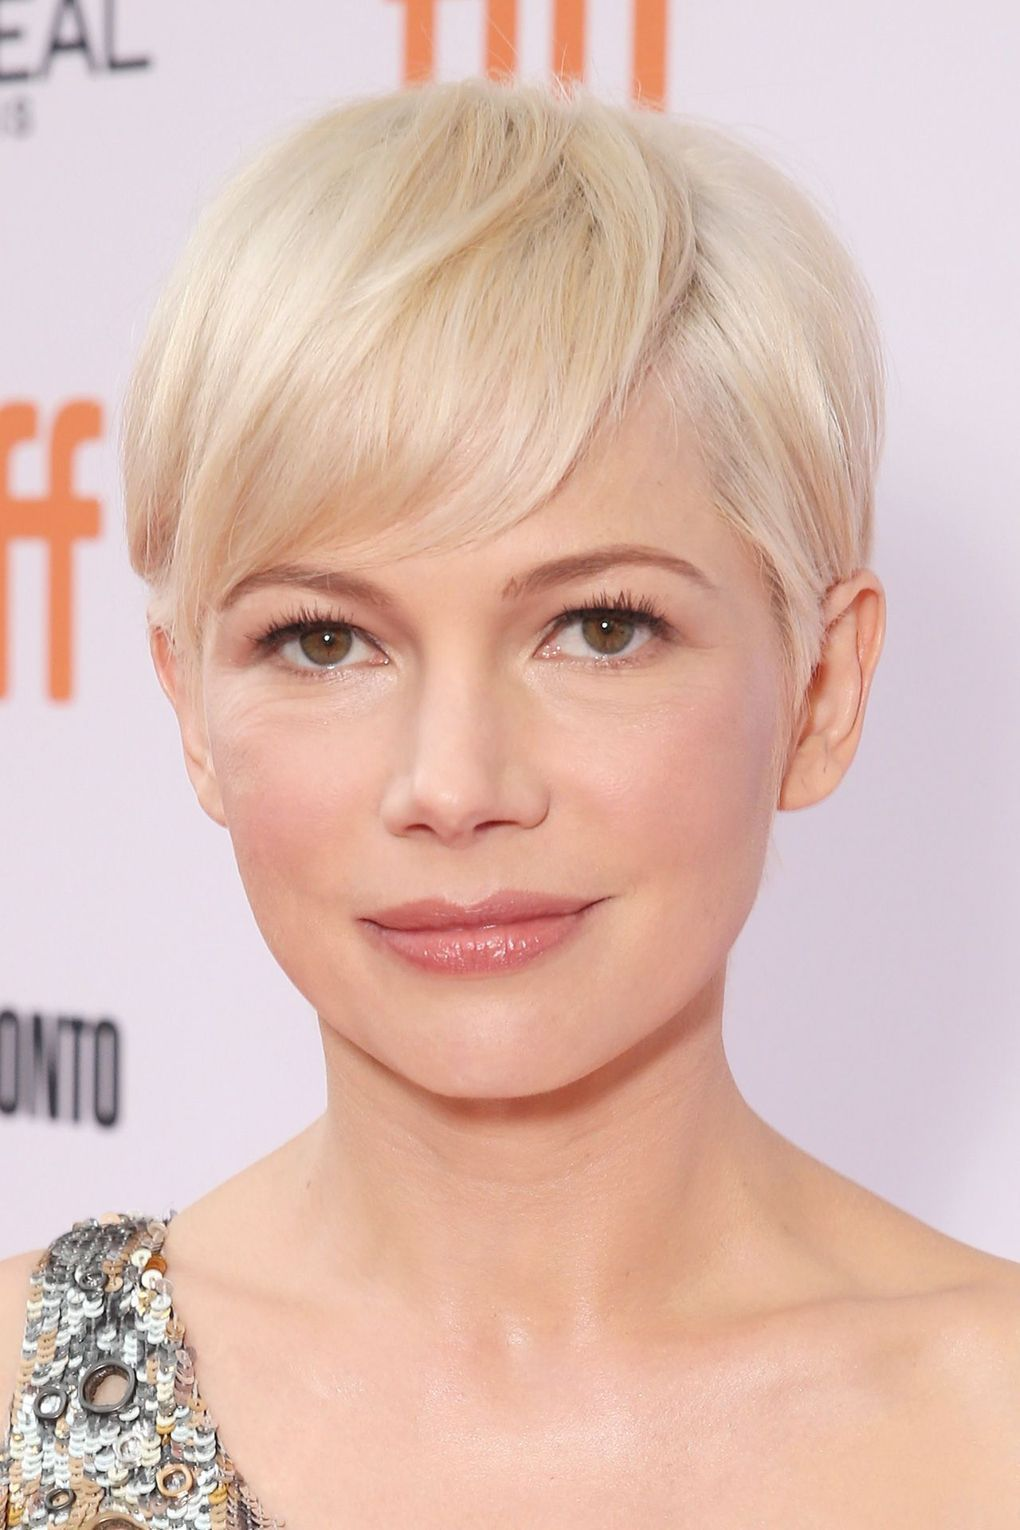 Williams showed off a platinum pixie crop at the Toronto